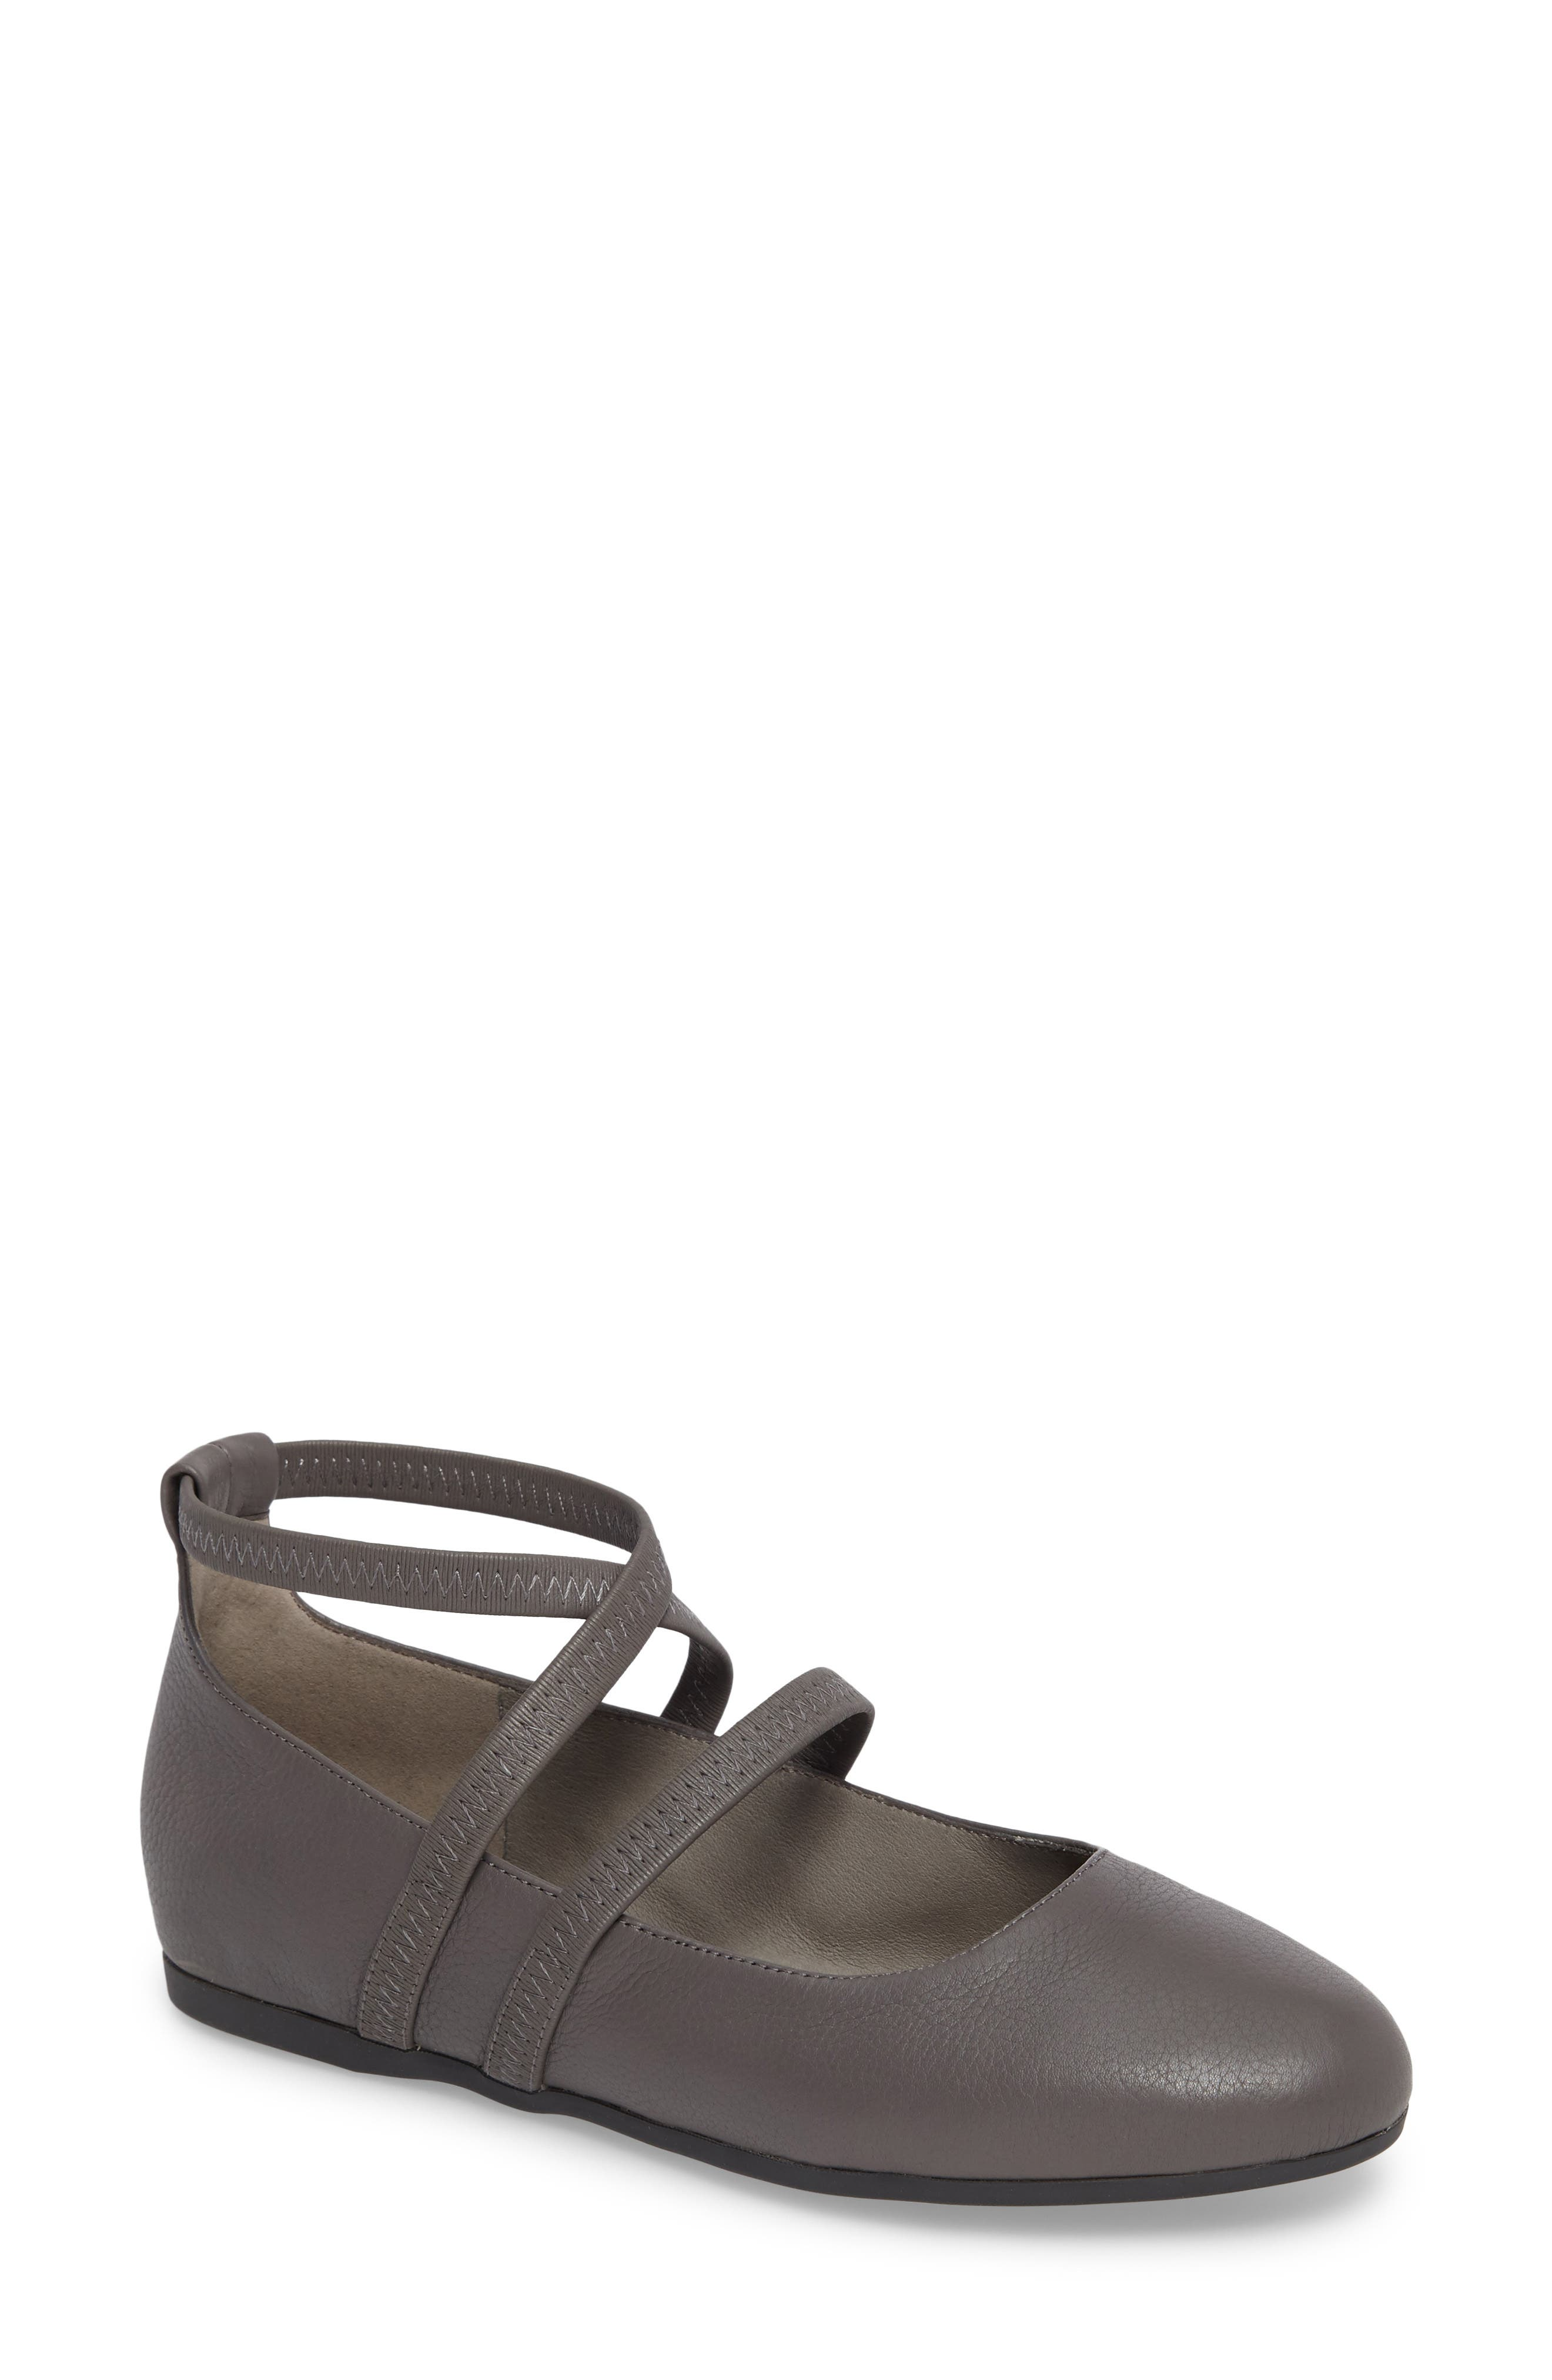 Joe Strappy Ballet Flat,                         Main,                         color, Storm Leather